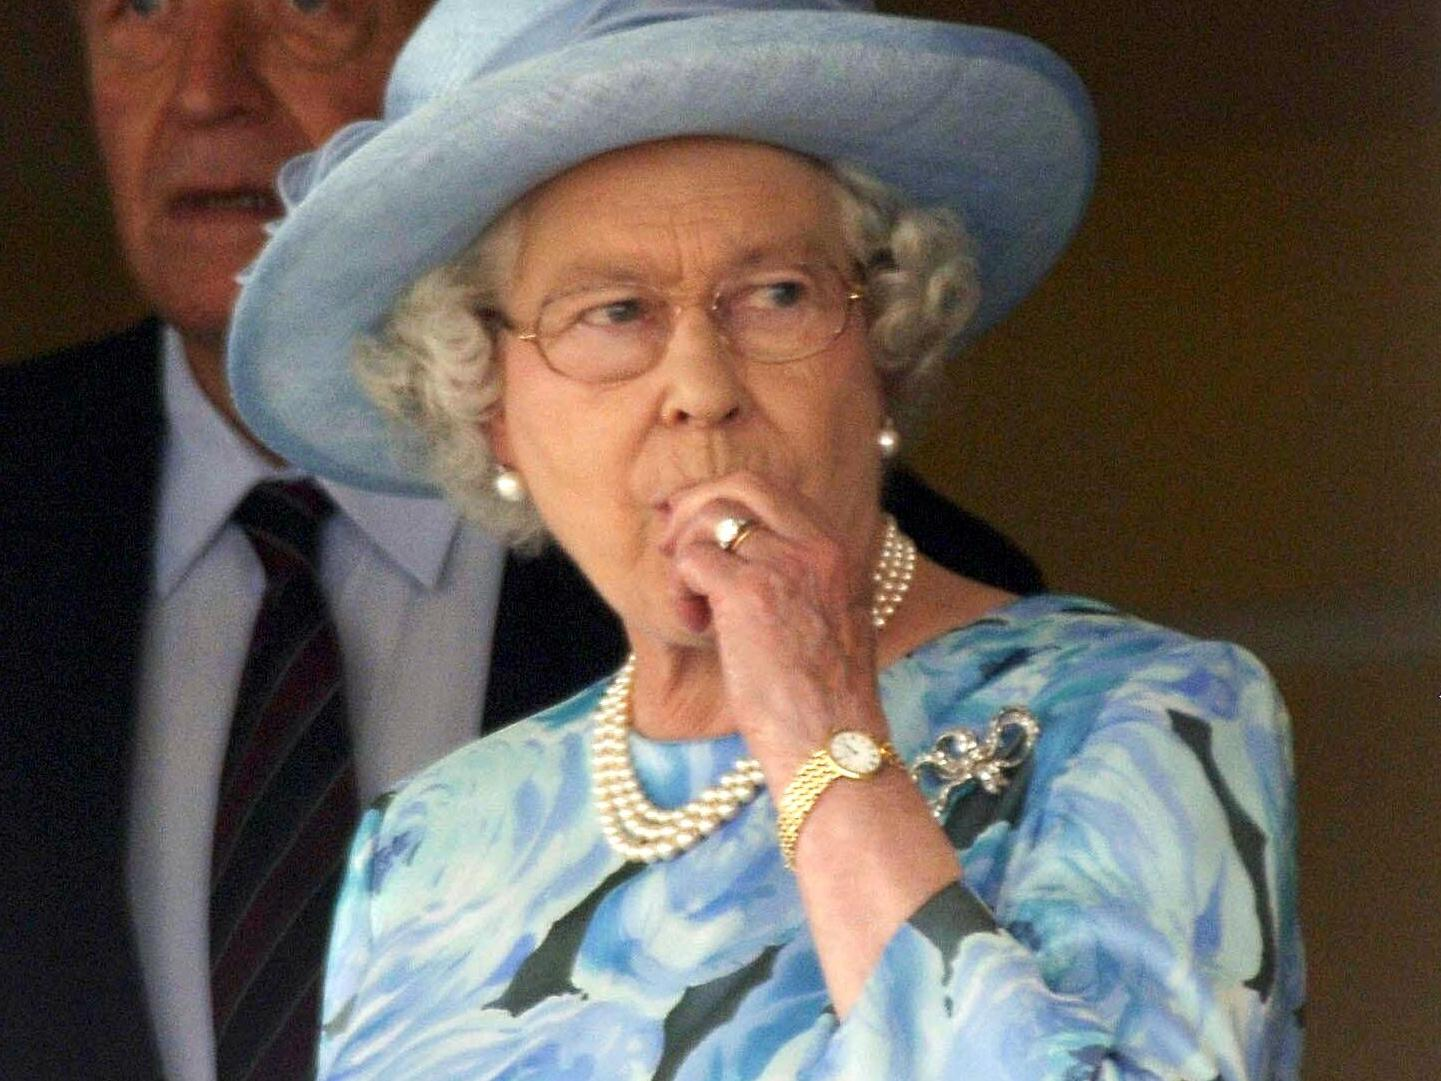 Everything the Queen eats in a day, according to royal chefs